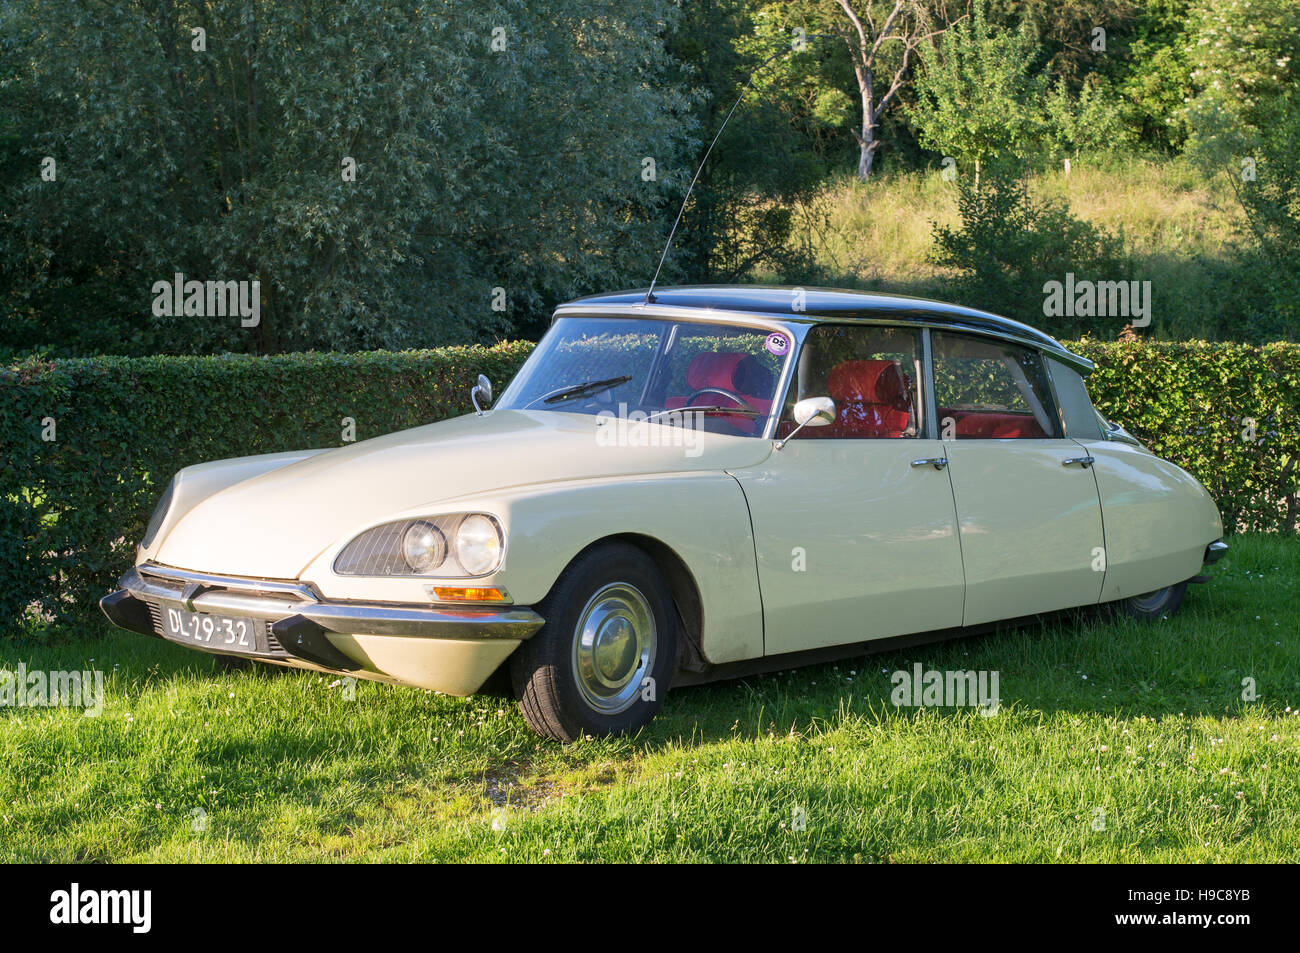 Citroën DS classic car in two tone ivory and black - Stock Image